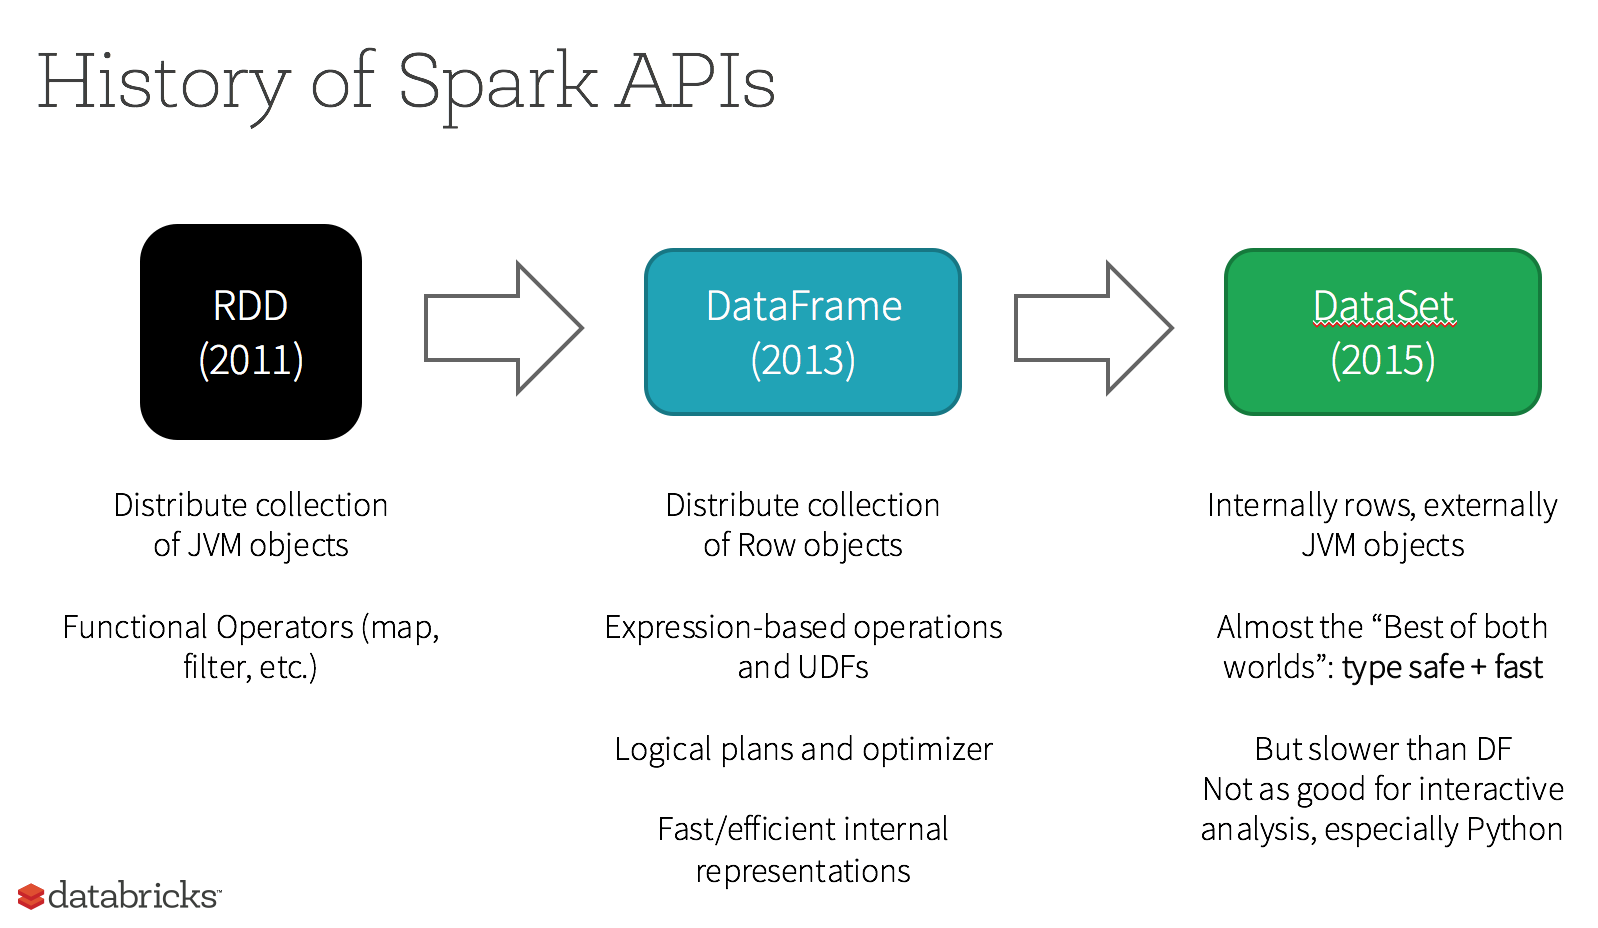 History of Spark APIs